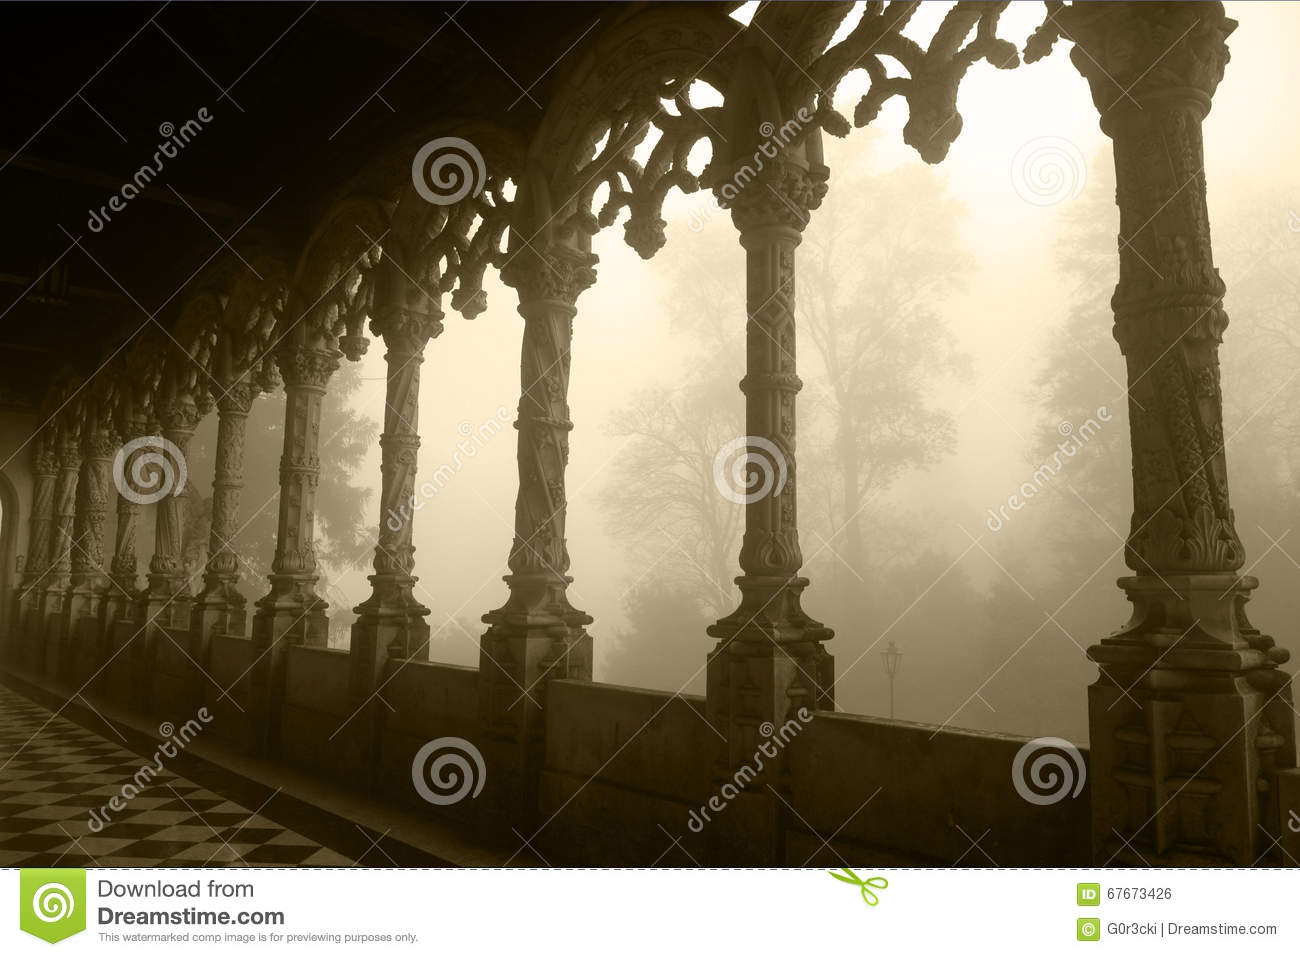 Bussaco Palace - Tracery Arched Gallery, Foggy Day - Sepia Image